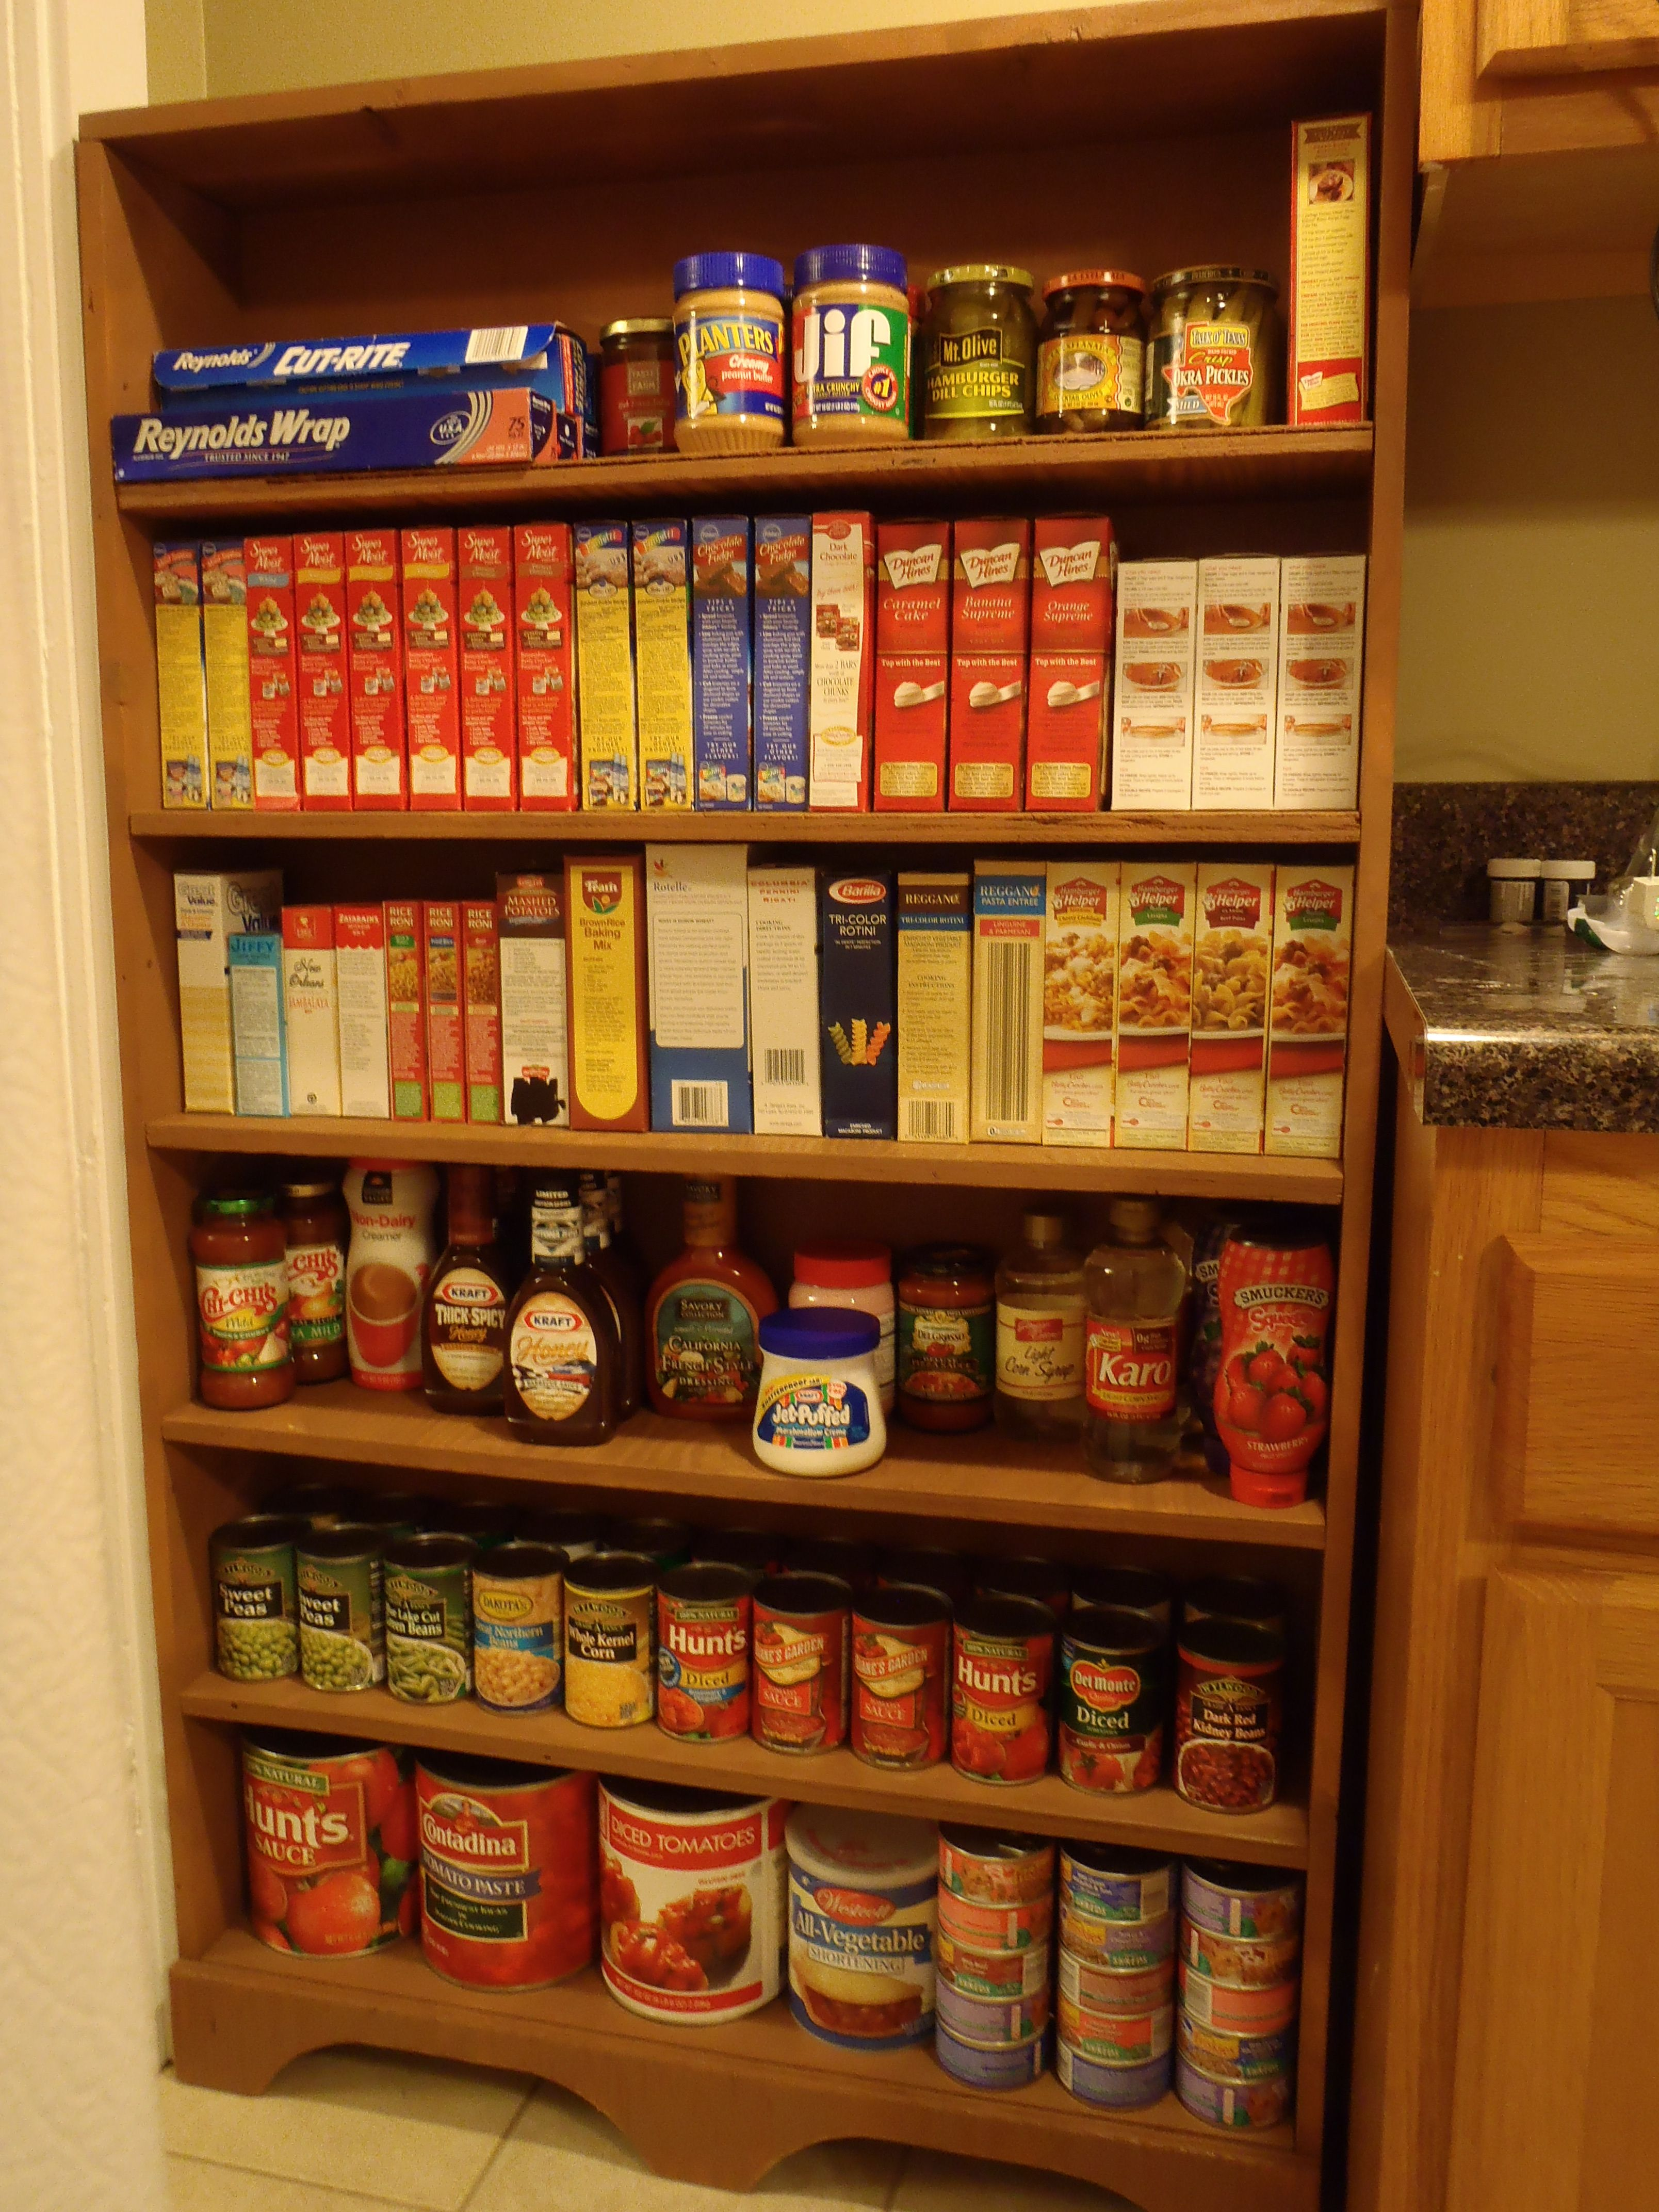 Marvelous photograph of Pantry shelf made out of reclaimed wood My Style Pinterest with #B83613 color and 3216x4288 pixels